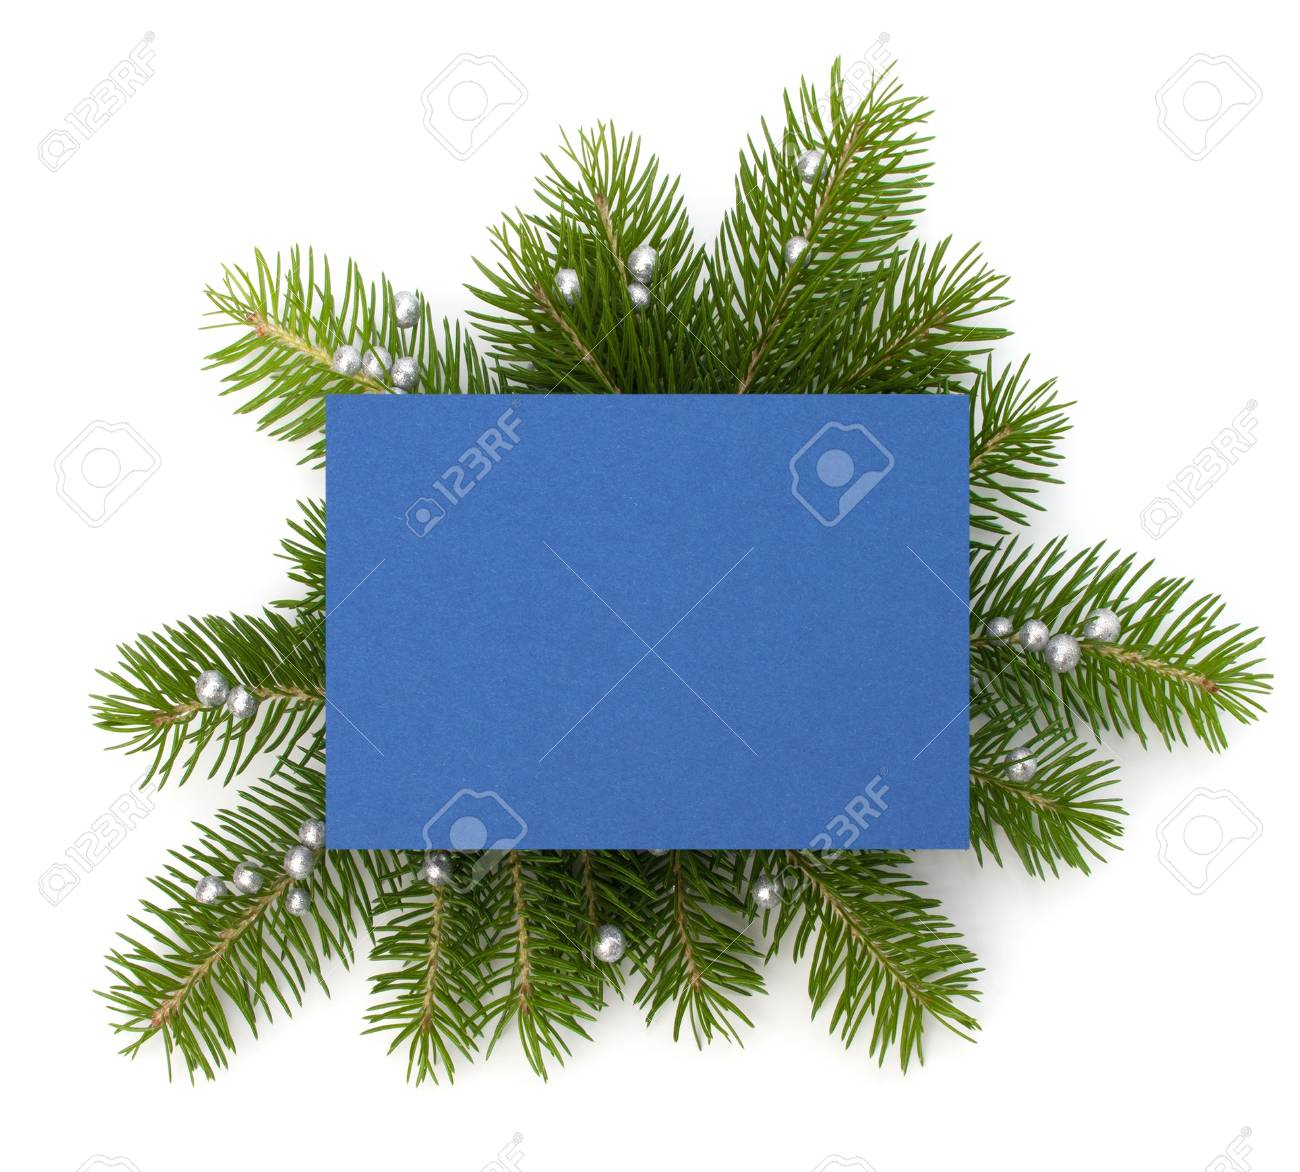 Christmas decoration with greeting card isolated on white background Stock Photo - 13331816